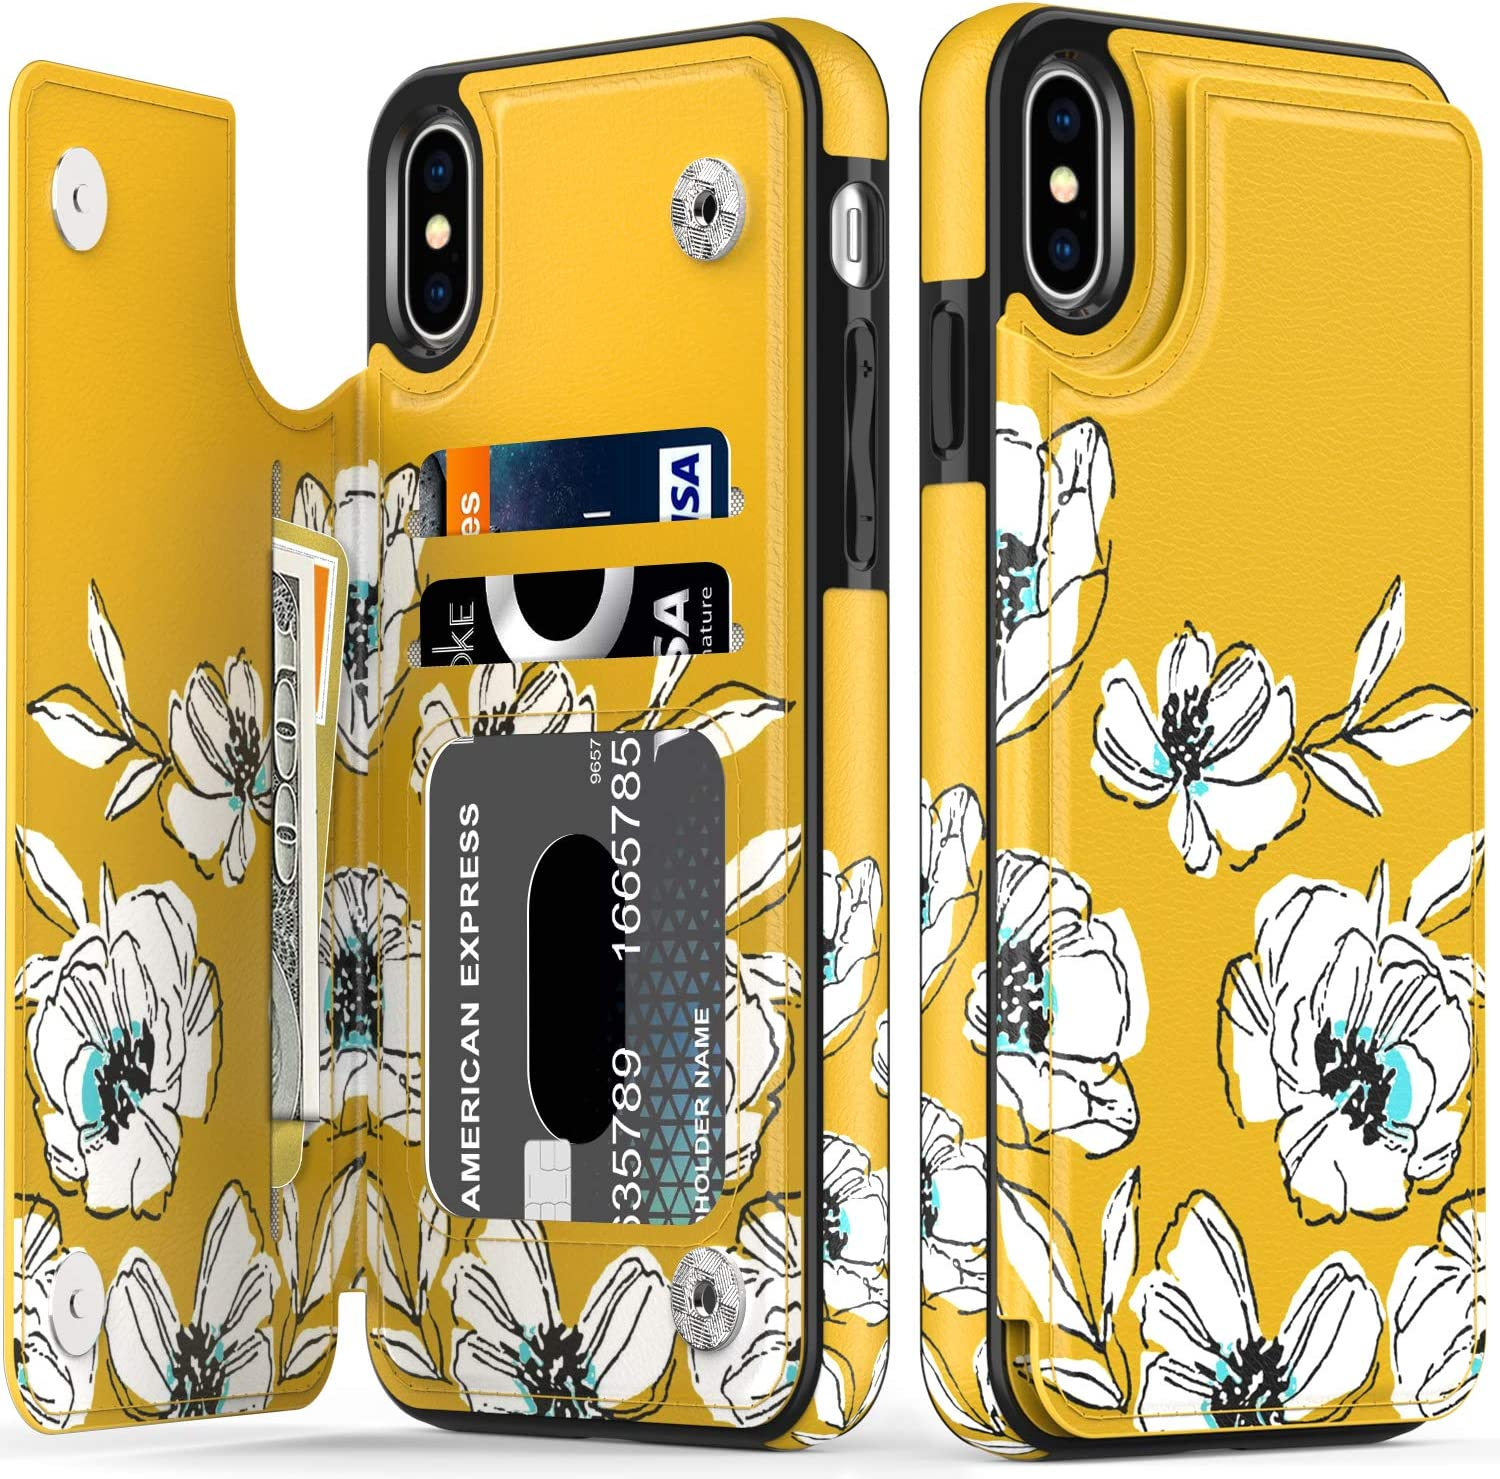 LETO iPhone X Case,iPhone Xs Case,Leather Wallet Case with Fashionable Flower Designs for Girls Women,Flip Folio Cover Kickstand Card Slots,Protective Phone Case for iPhone X/Xs Tiny White Florals